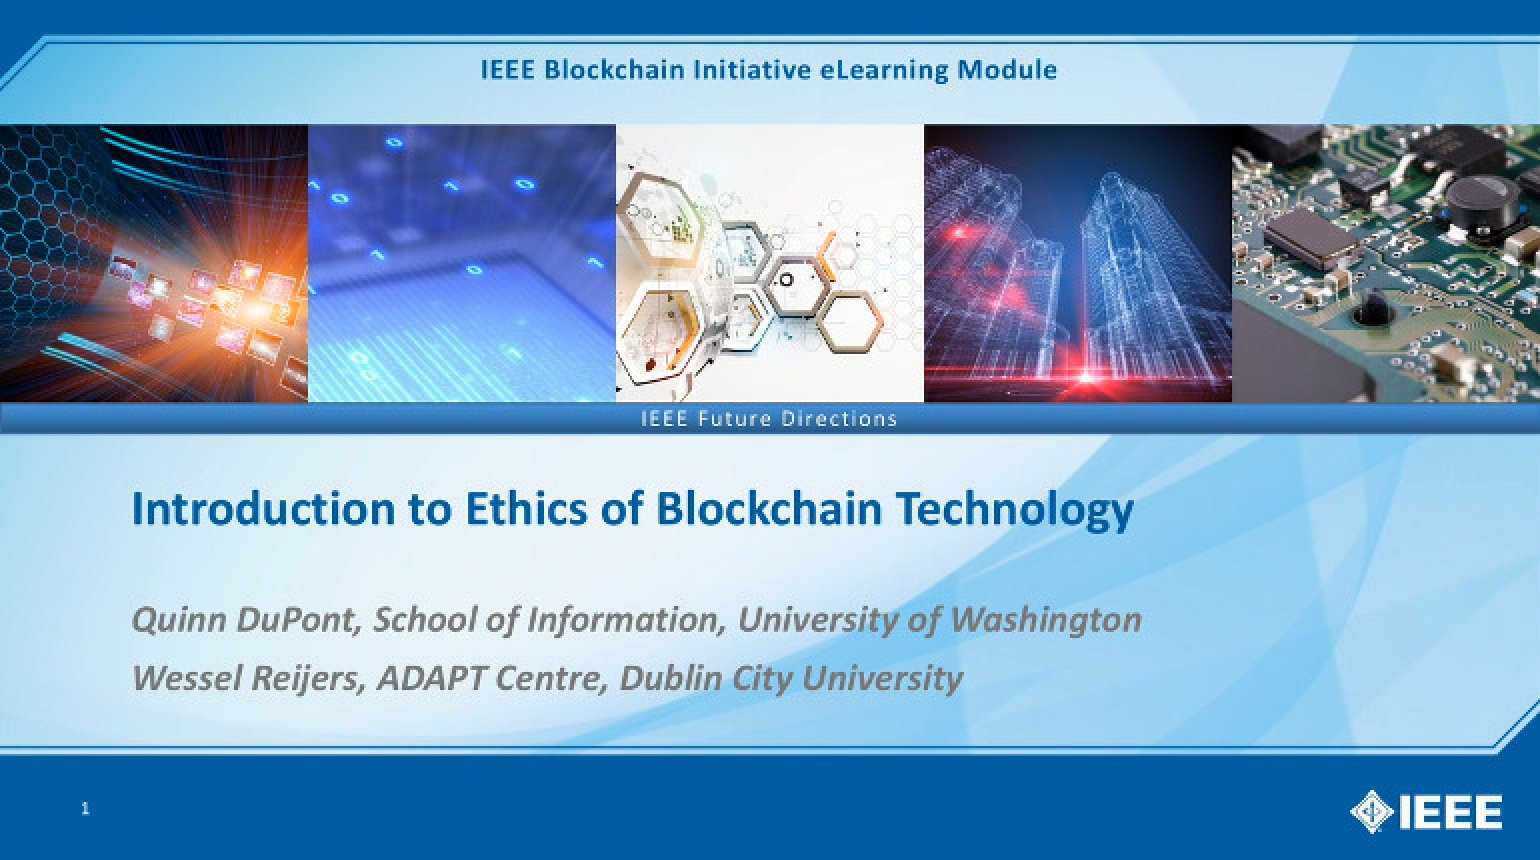 Introduction to Ethics of Blockchain Technology